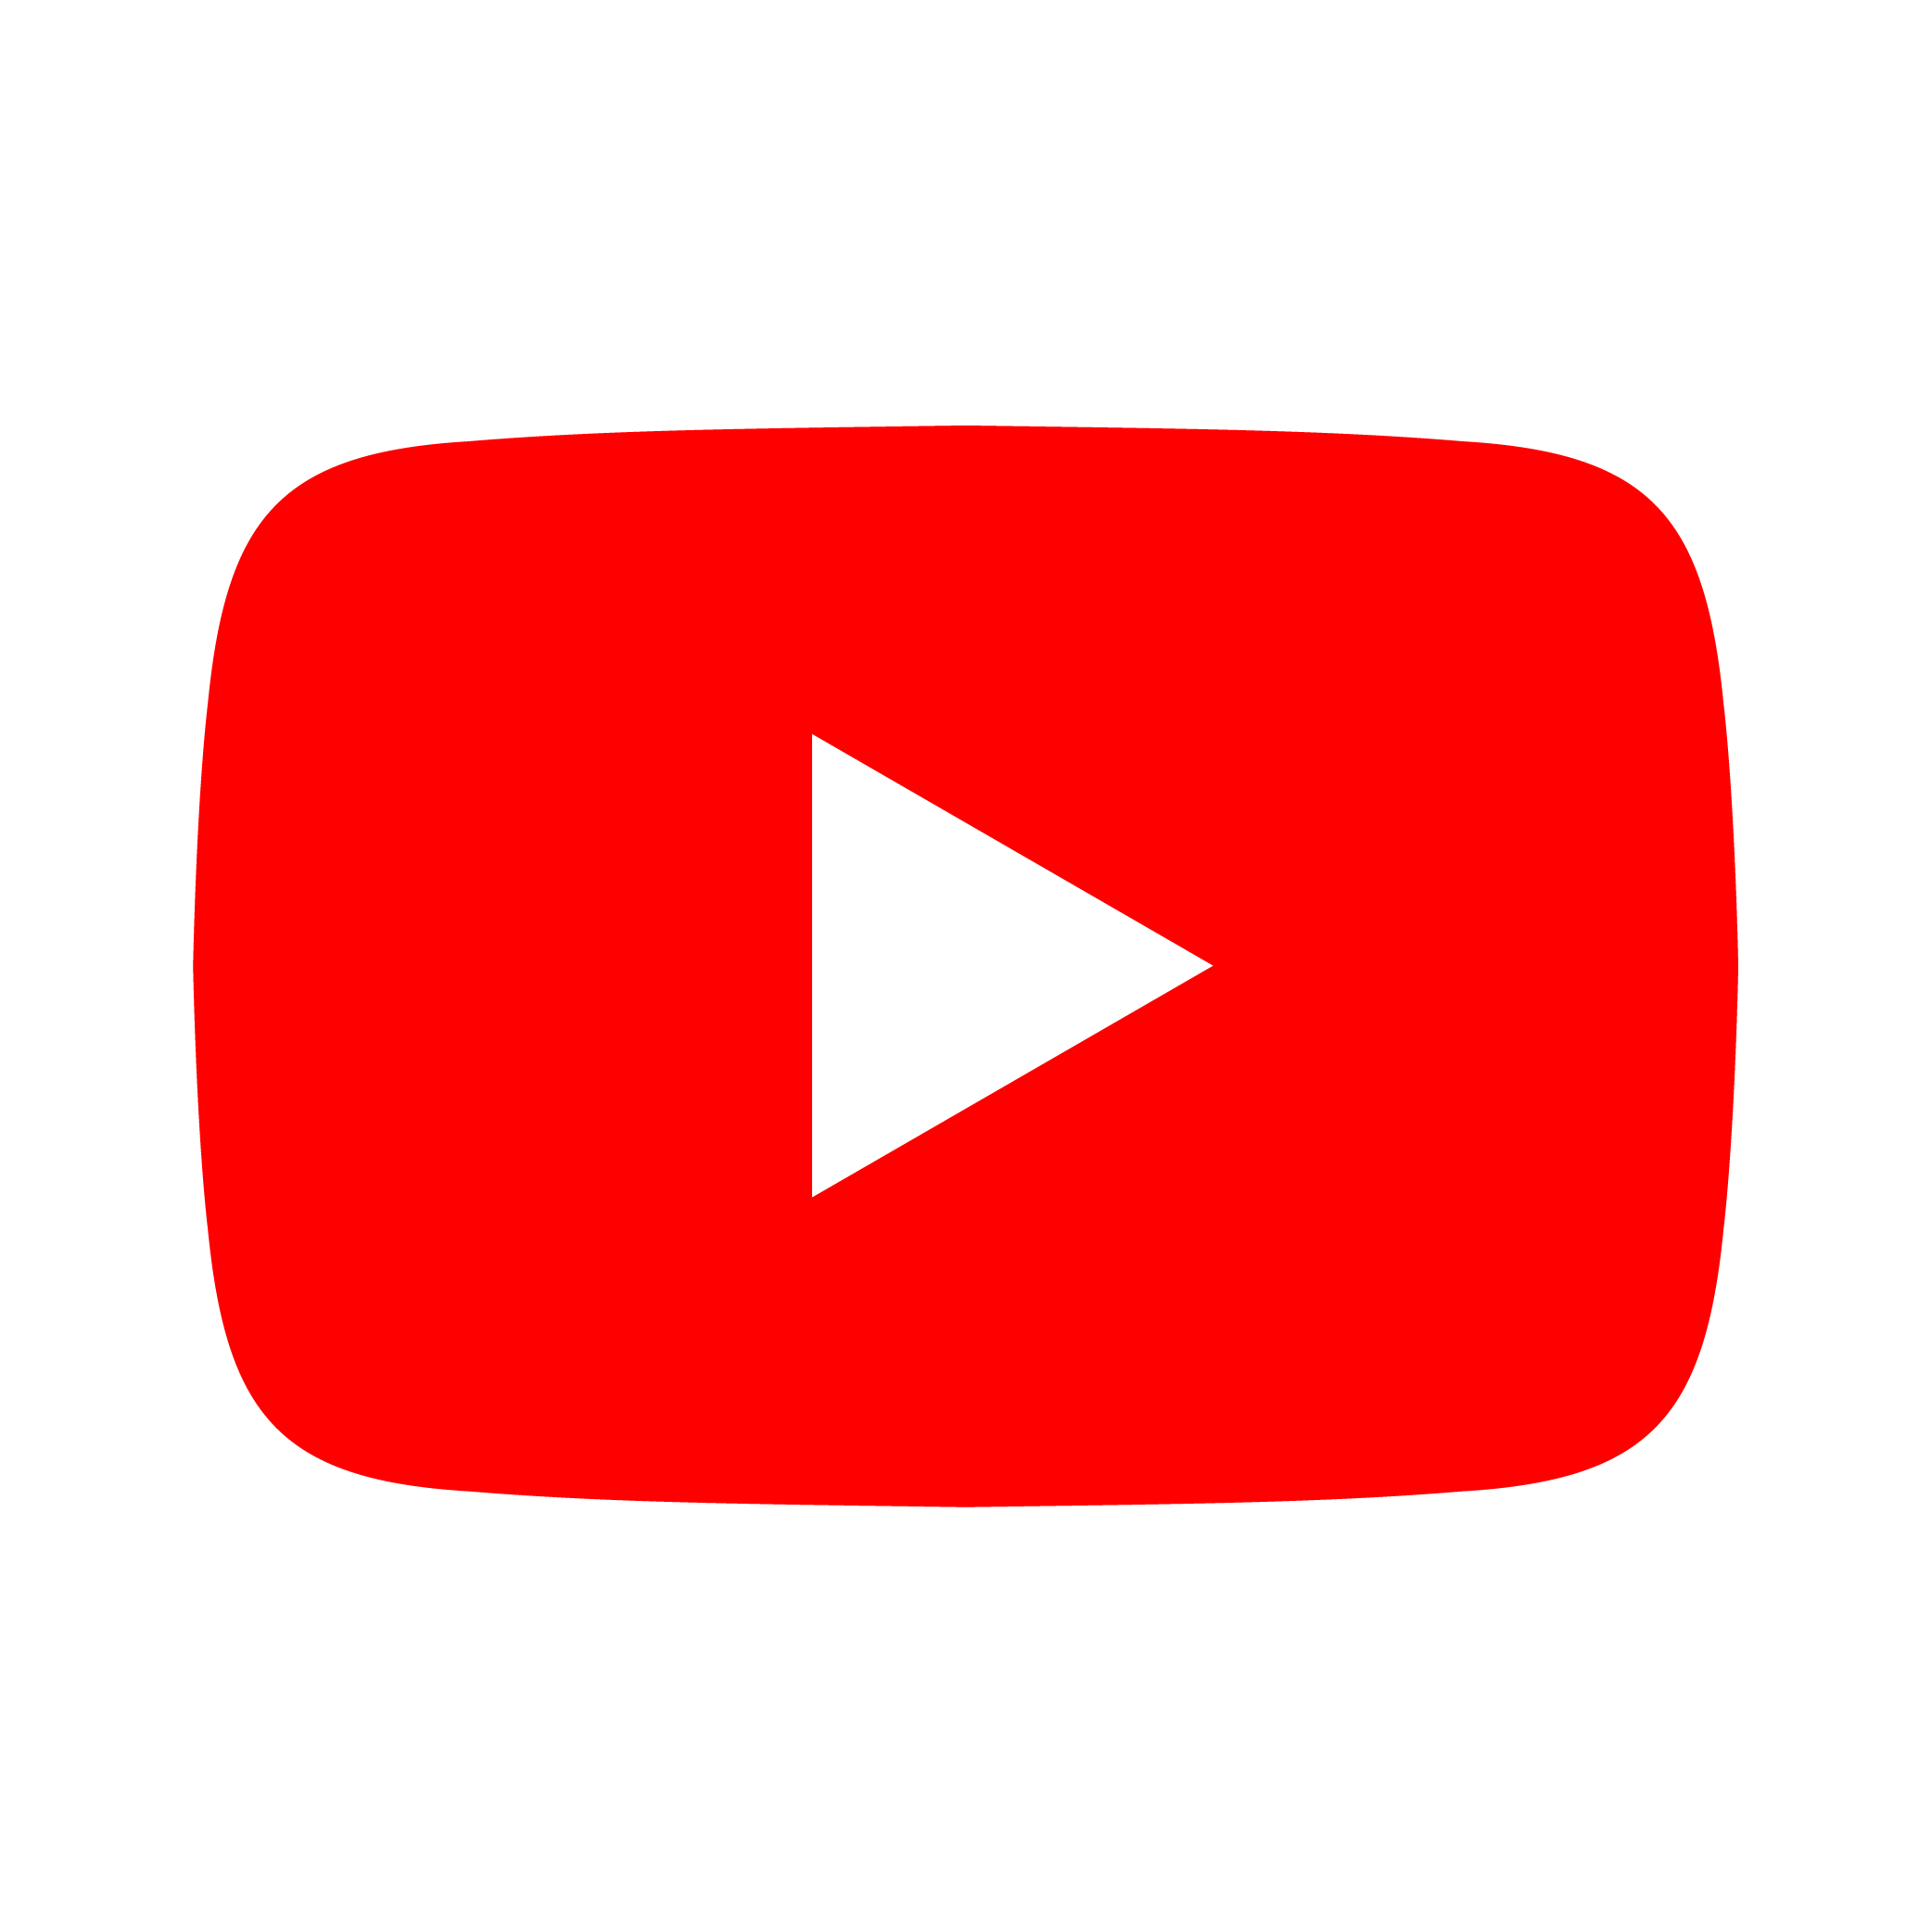 youtube-logo_3.png